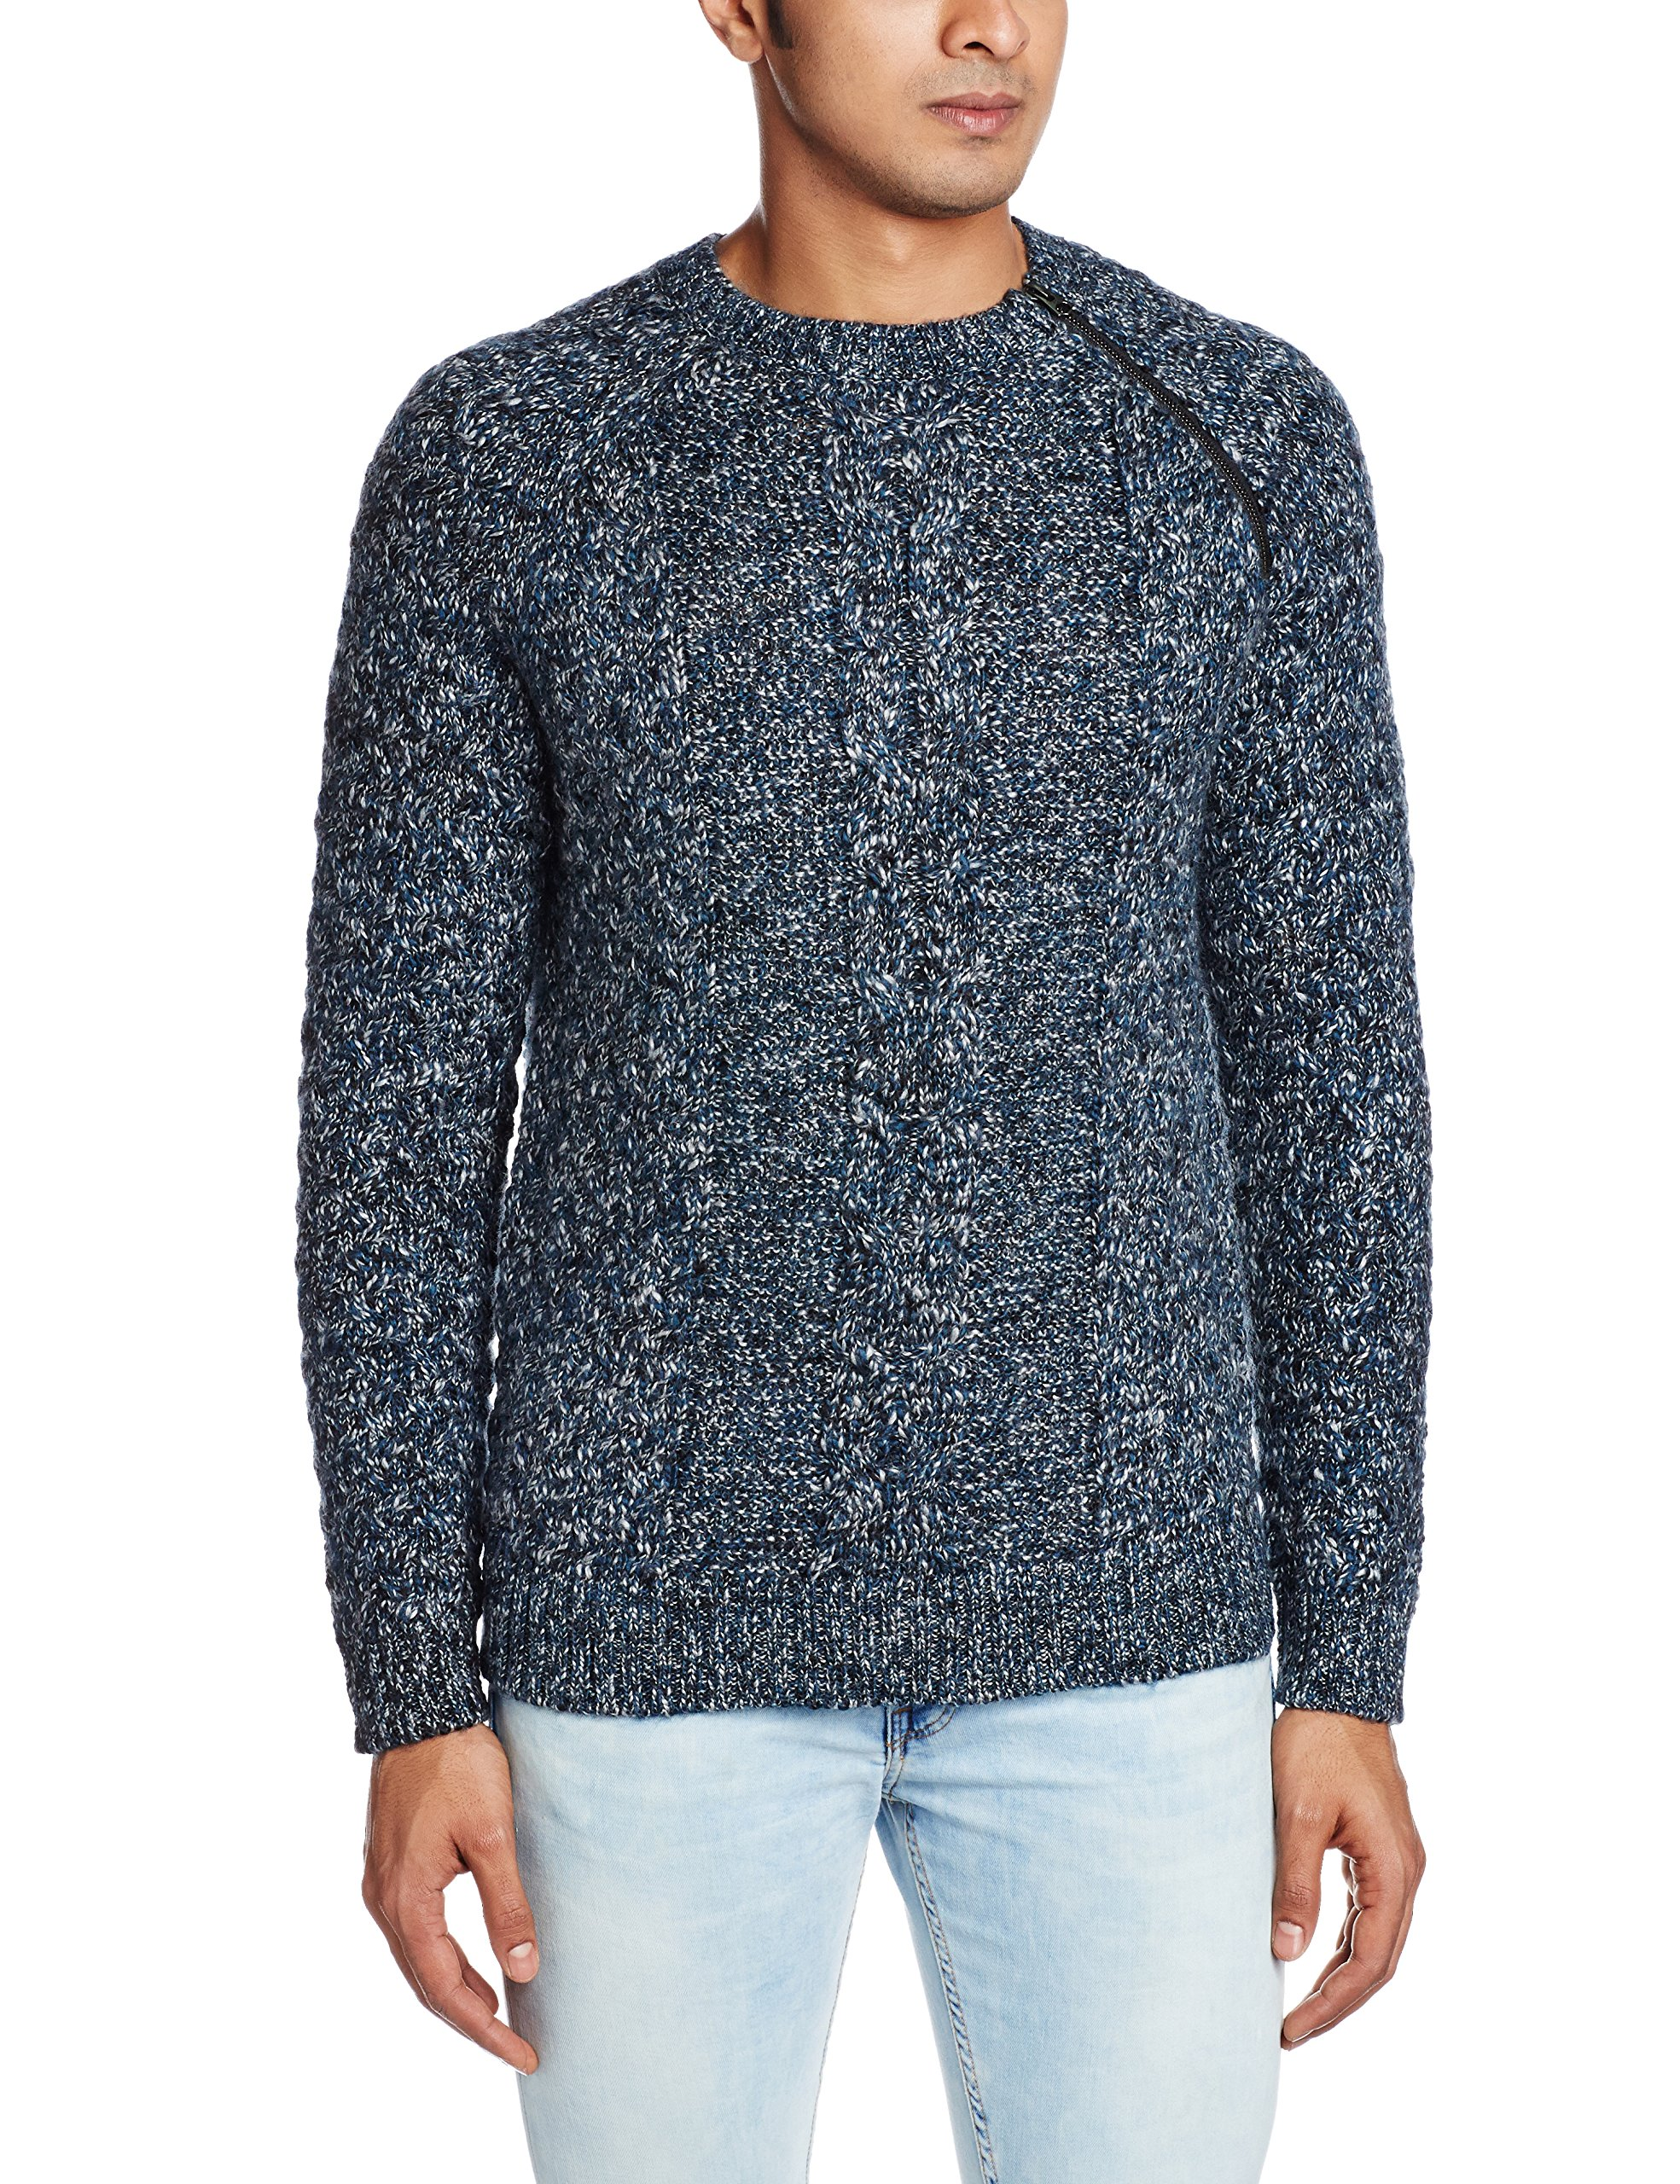 French Connection Men's Ryder Cable Knit Sweater with Zip, Majolica Blue, Small